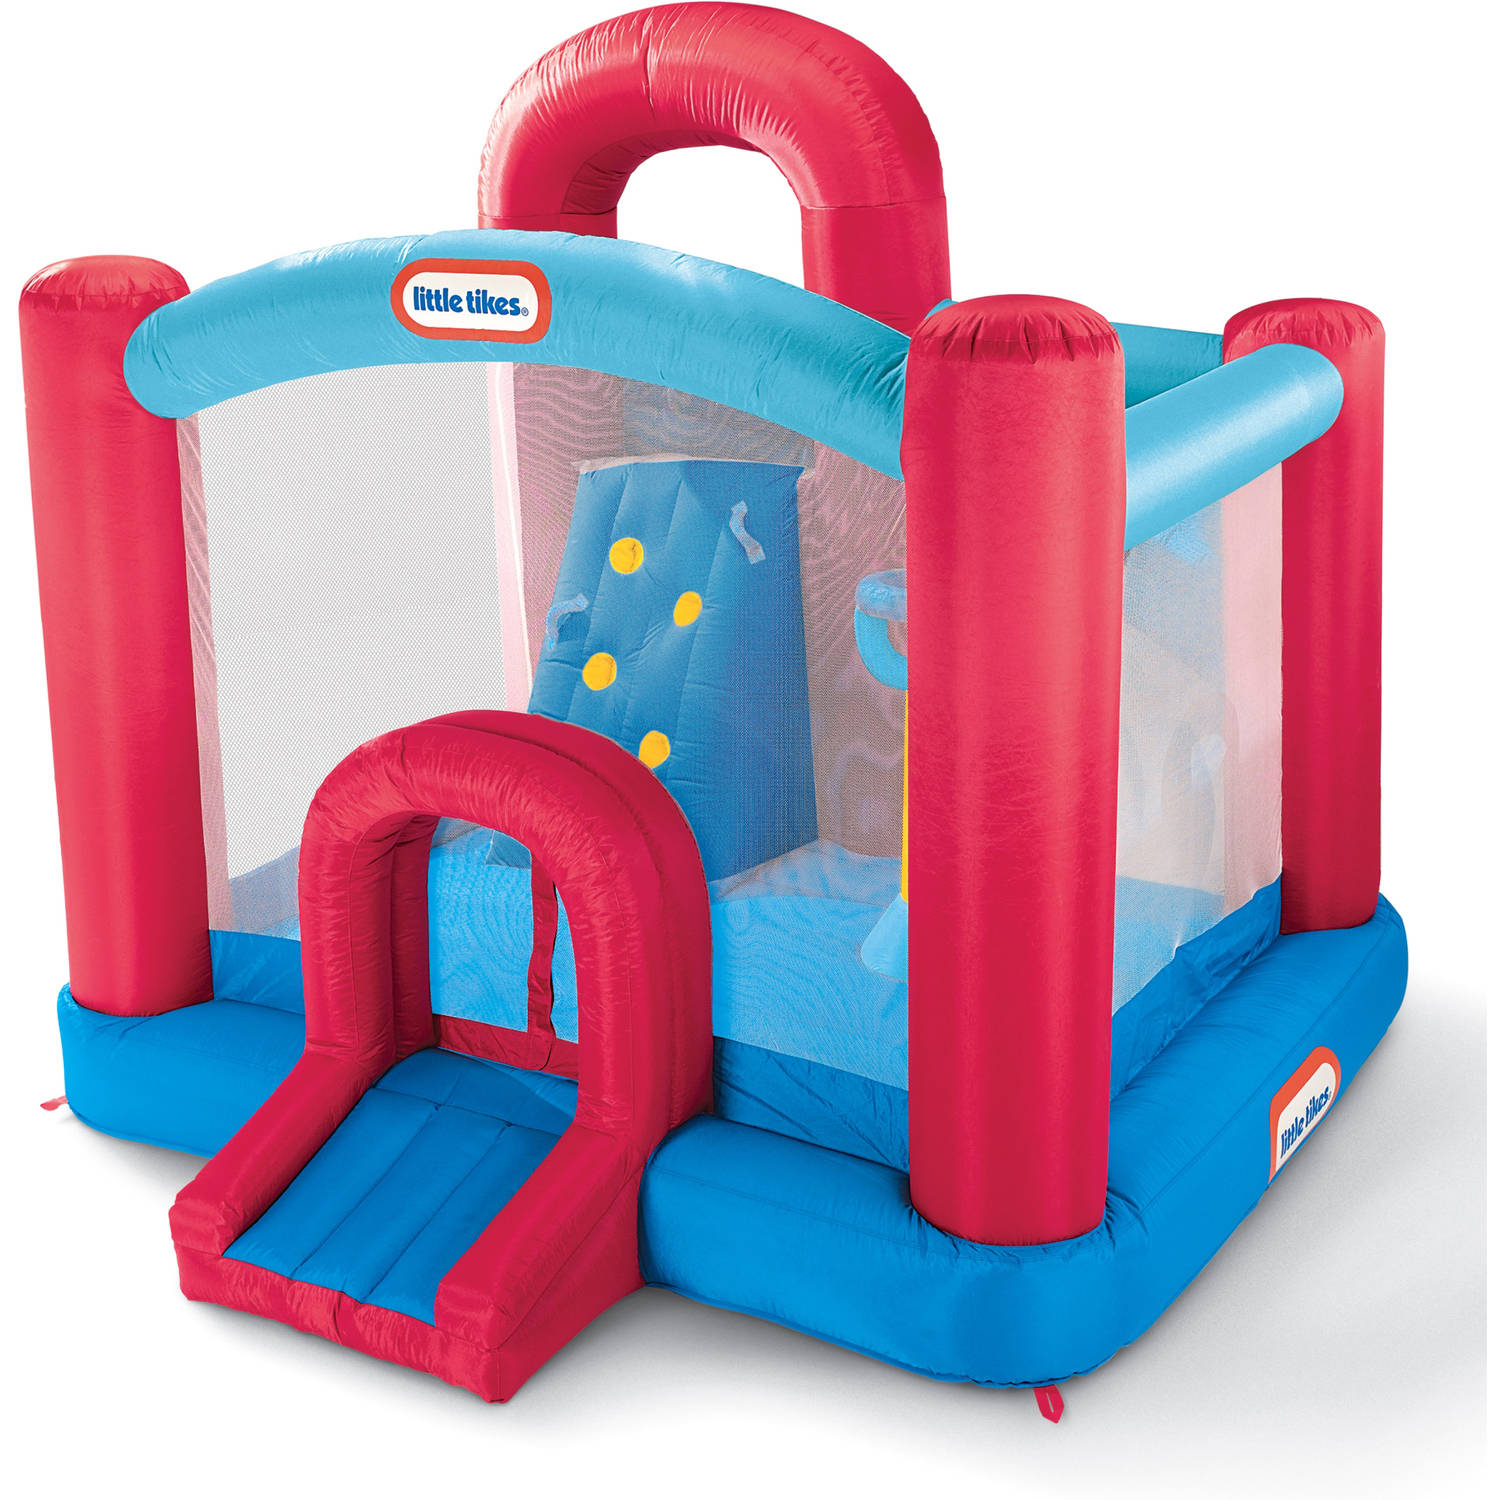 Mga Entertainment Little Tikes Super Spiral Bouncer